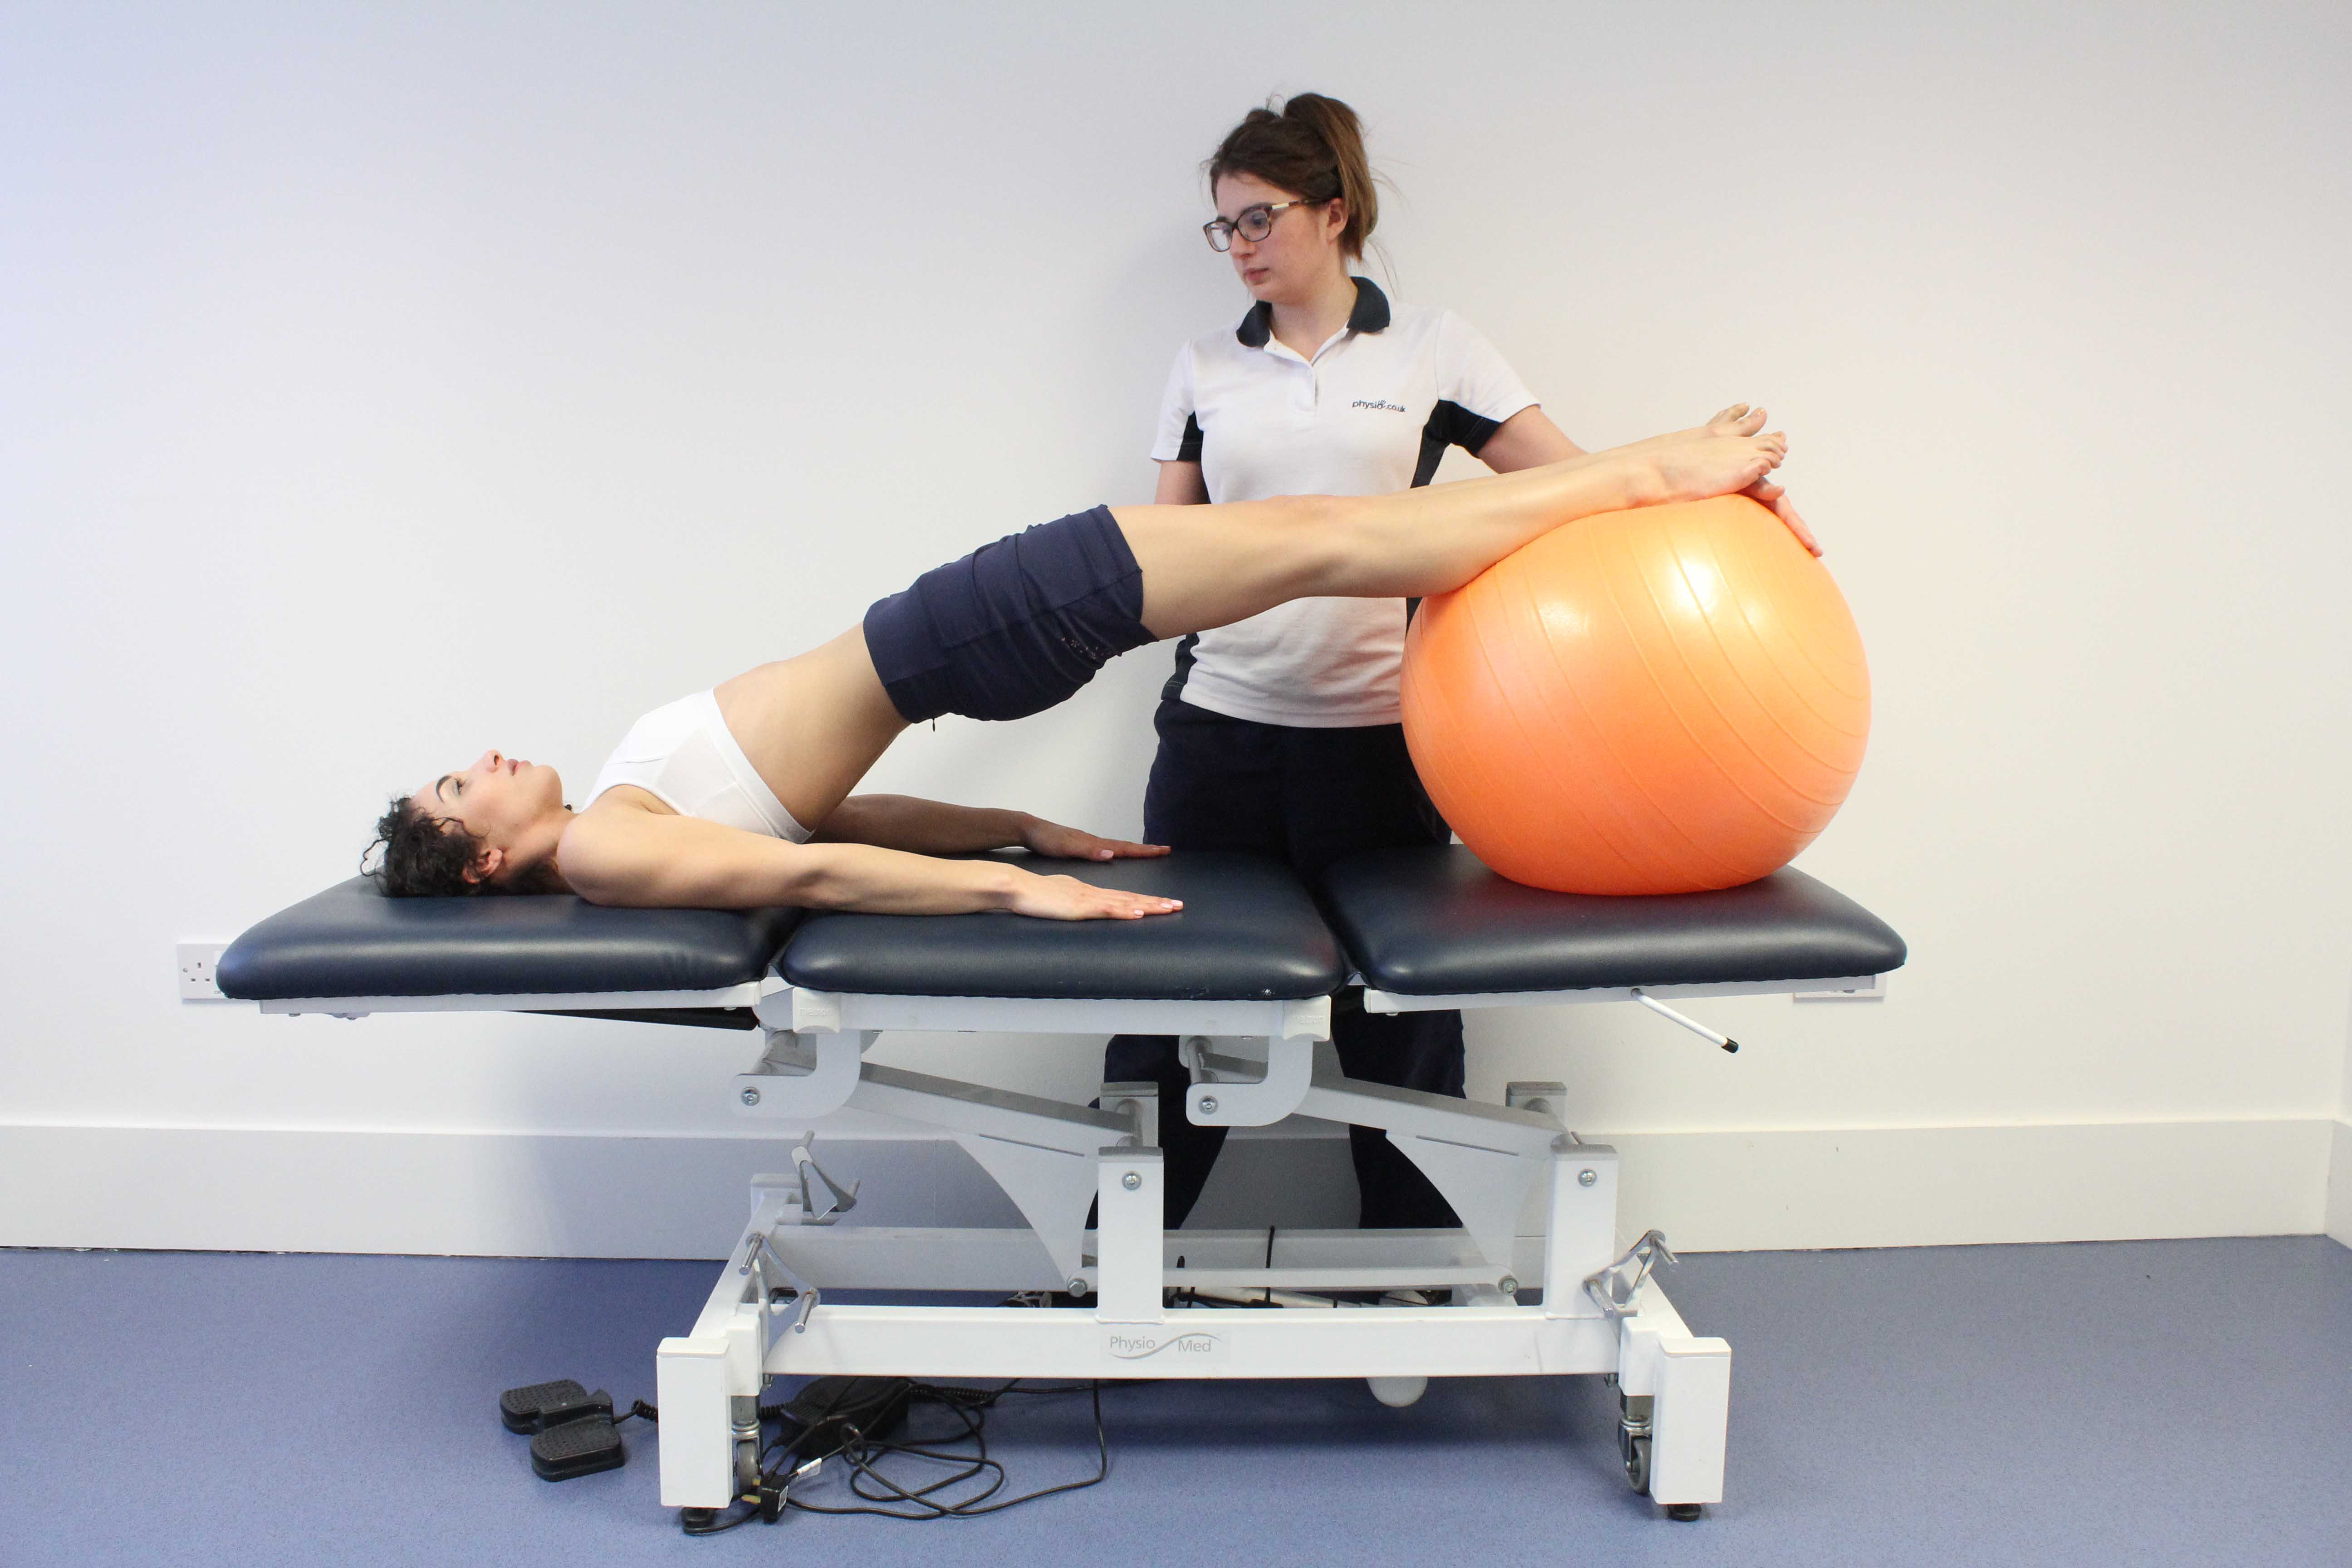 Bridging exercises supervised by a physiotherapist to improve core stability